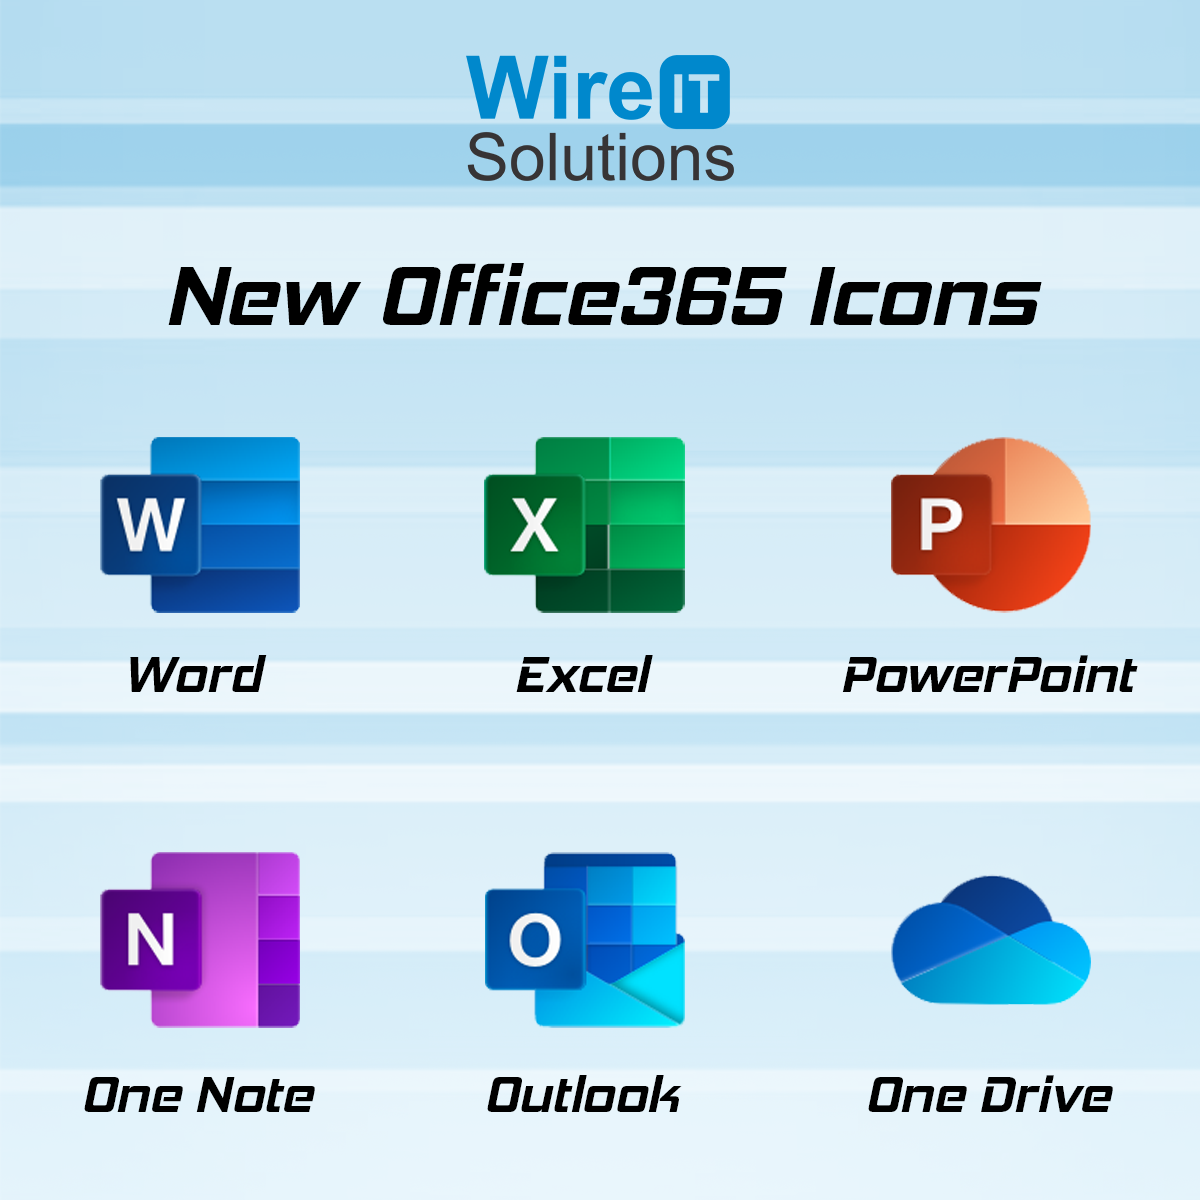 Microsoft Office new logos are here! Microsoft